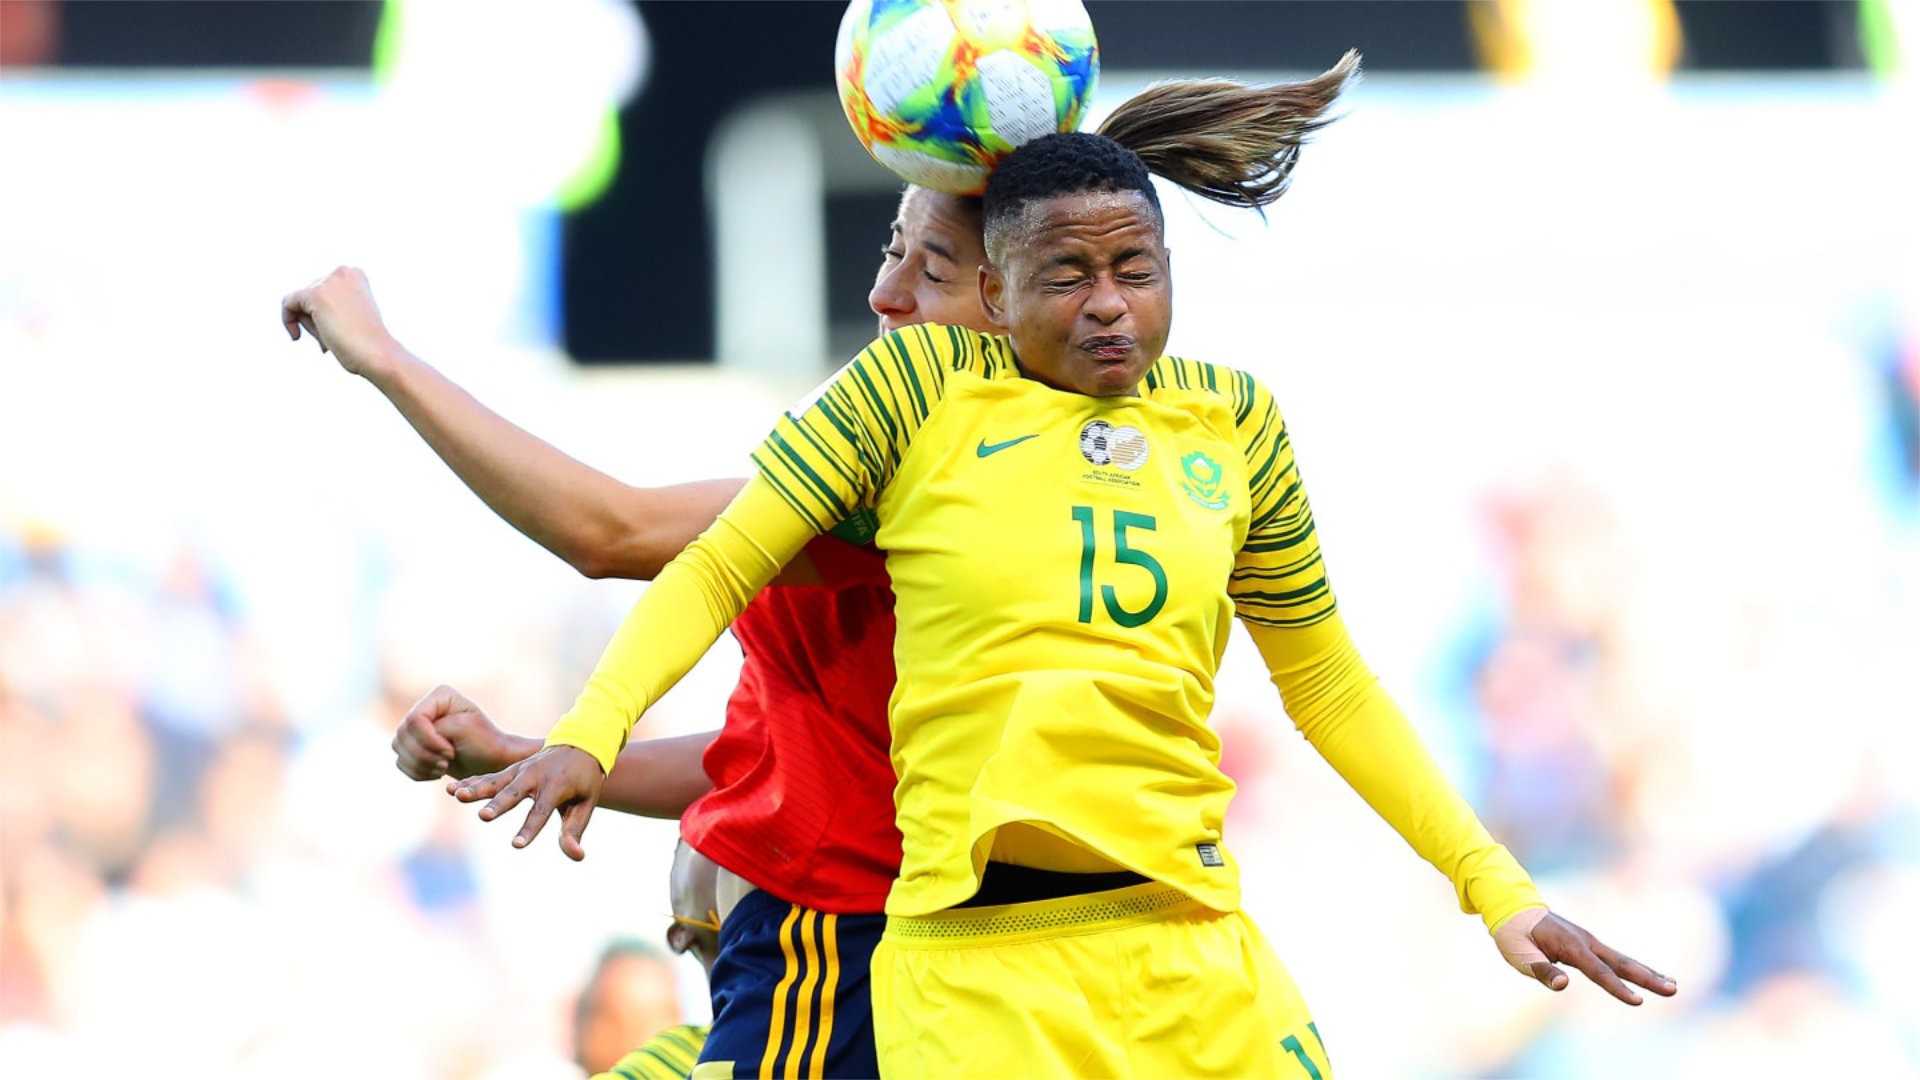 Refiloe Jane of South Africa jumps for the ball in the opening 2019 Soccer World Cup match against Spain.